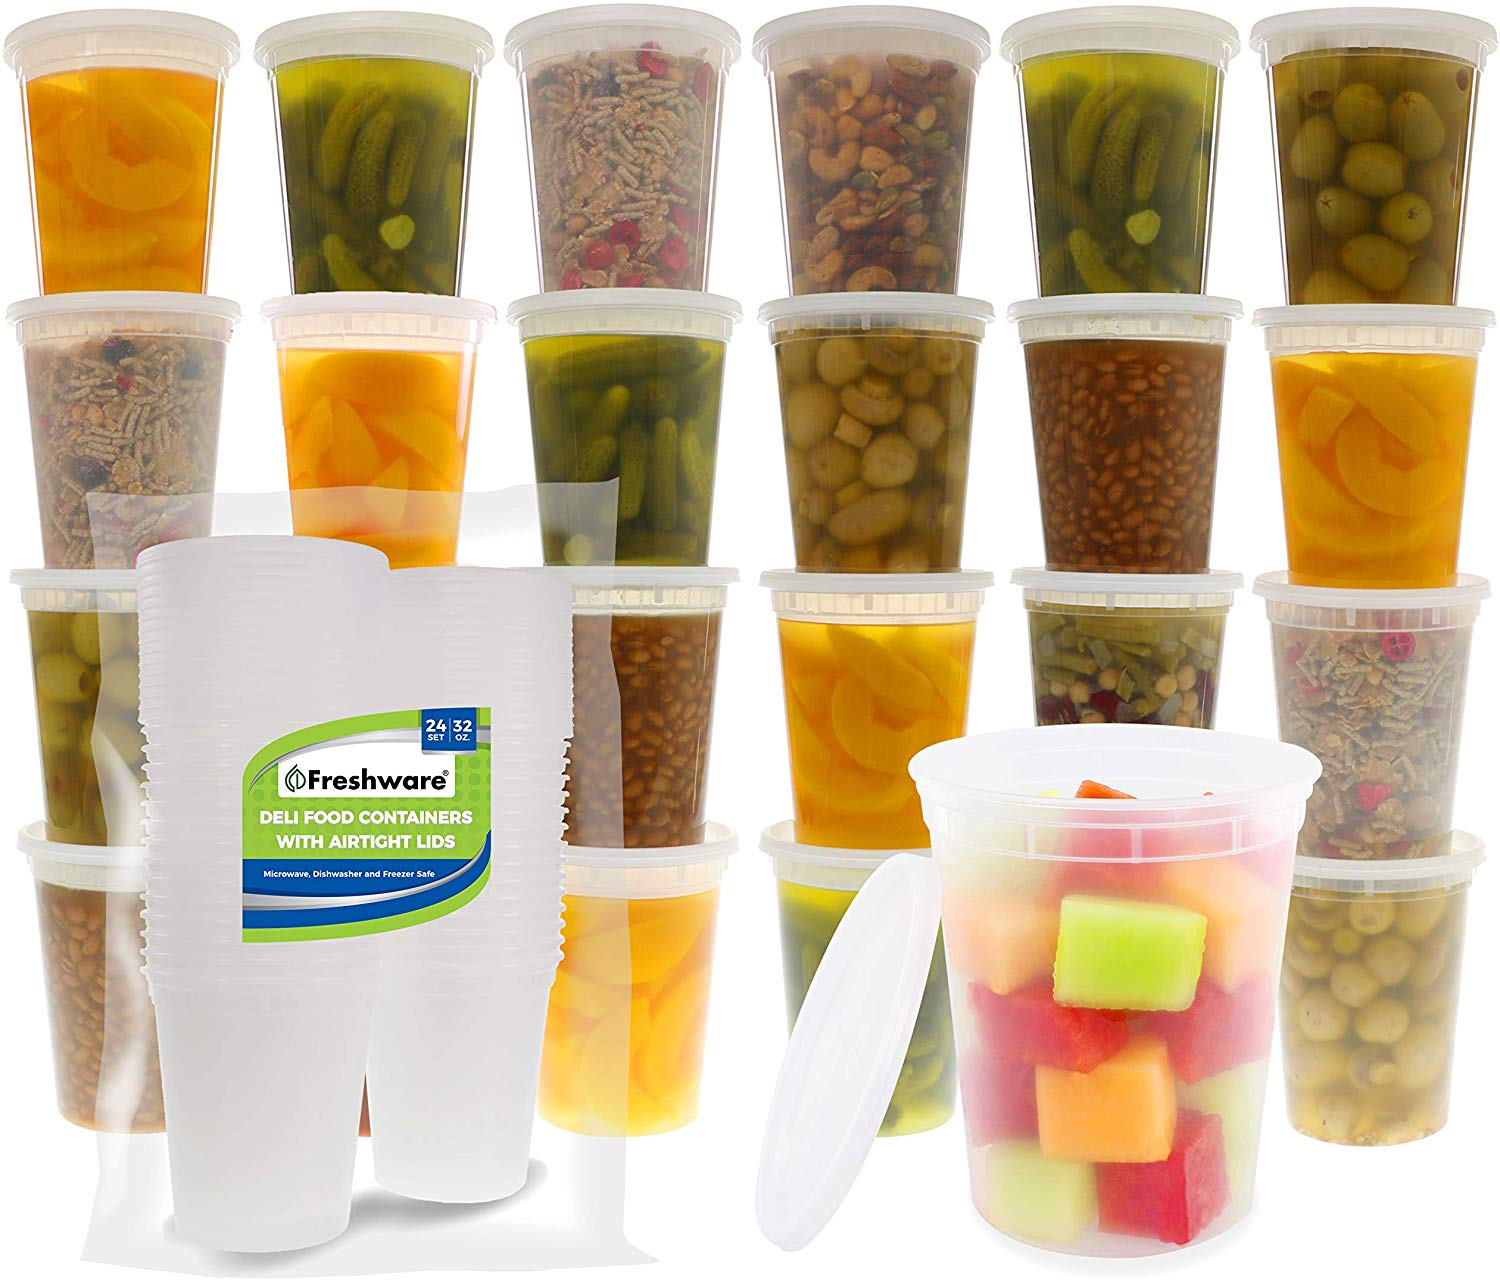 Food Storage Containers [24 Pack] 32 oz Plastic Containers with Lids, Deli, Slime, Soup, Meal Prep Containers | BPA Free | Stackable | Leakproof | Microwave/Dishwasher/Freezer Safe